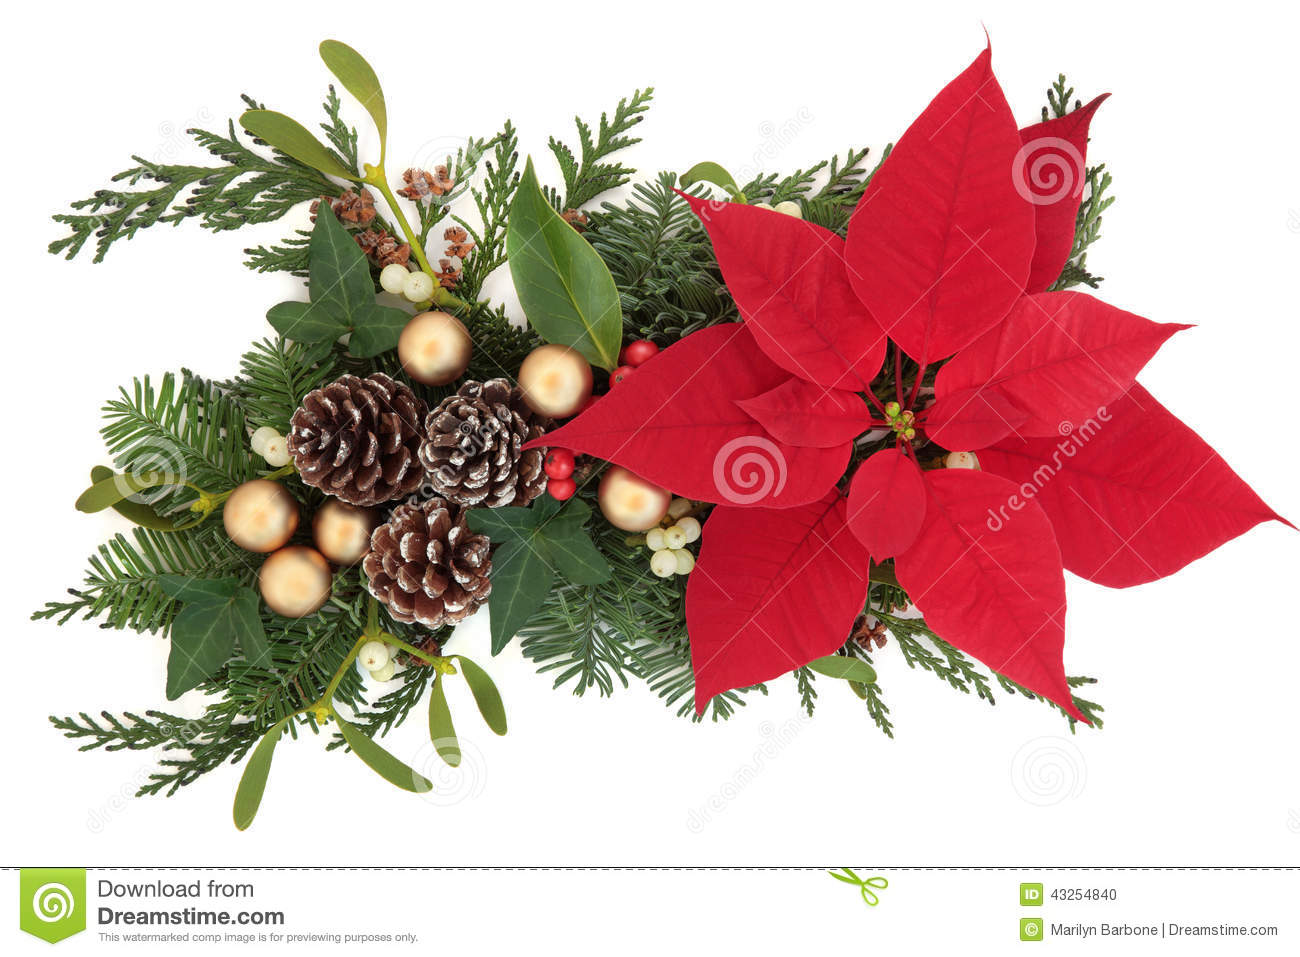 christmas floral display - White Christmas Flower Decorations